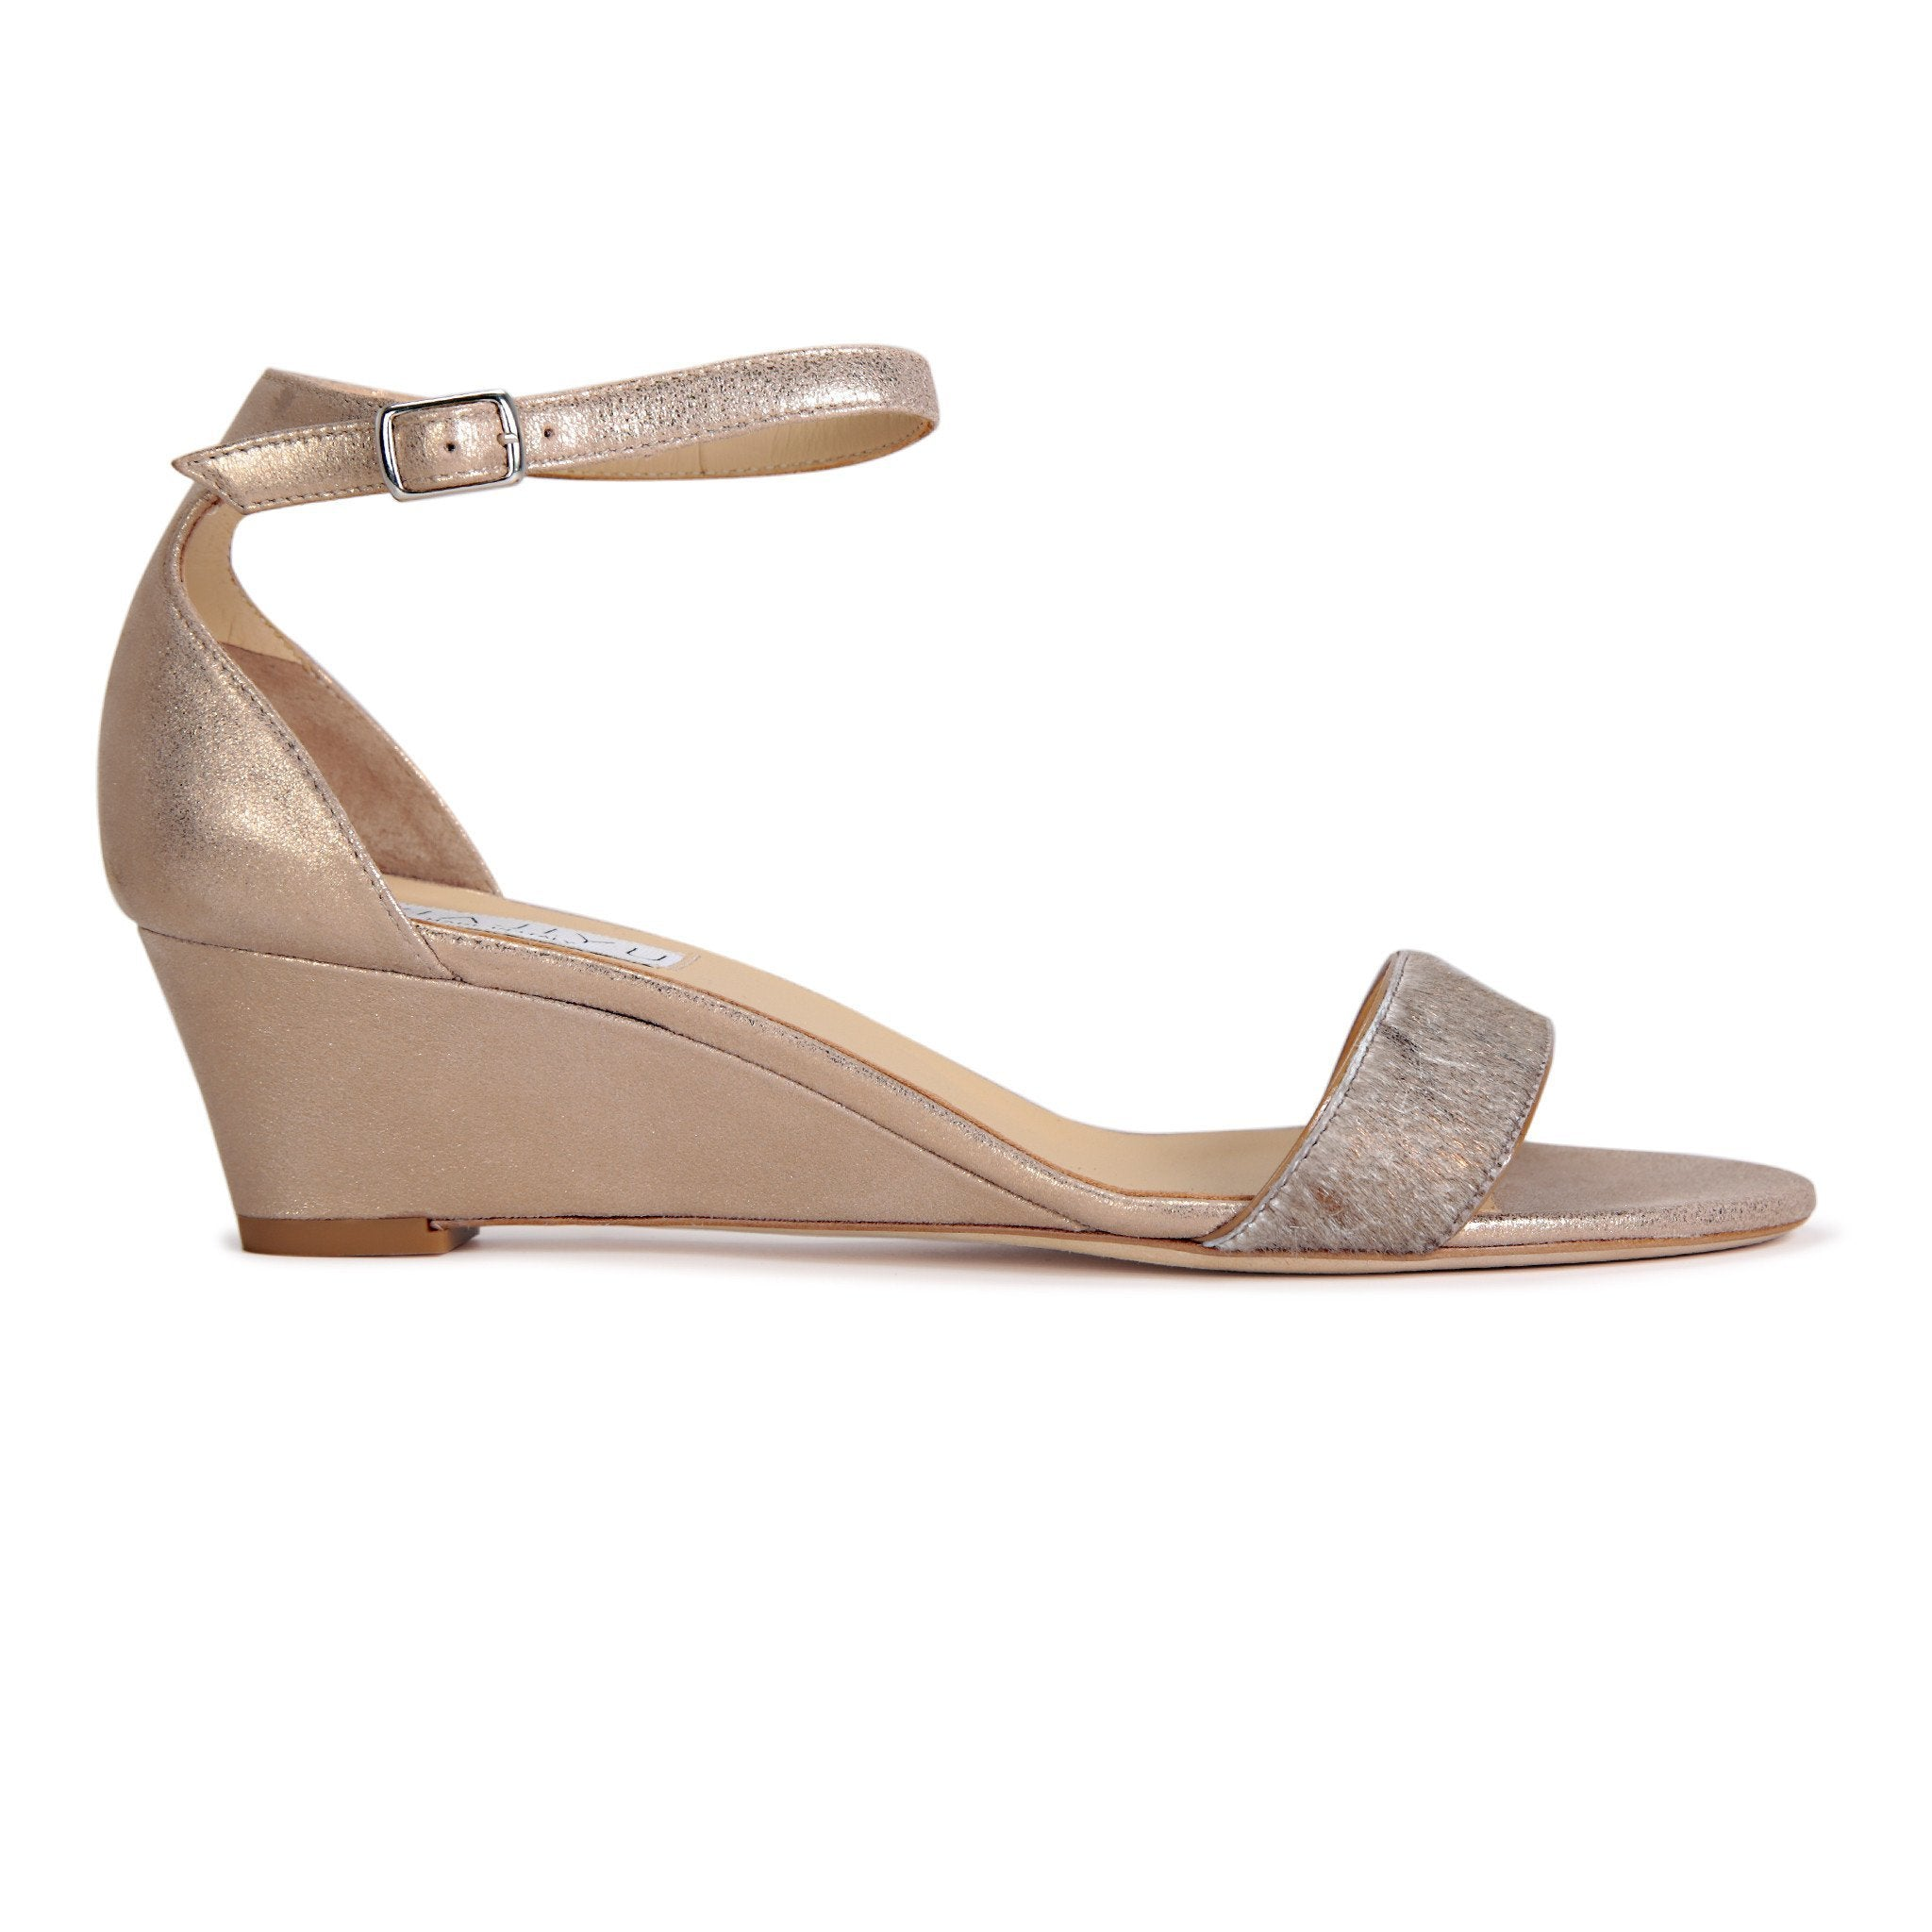 SAVONA - Calf Hair Vintage Copper + Burma Sabbia Rosata, VIAJIYU - Women's Hand Made Sustainable Luxury Shoes. Made in Italy. Made to Order.